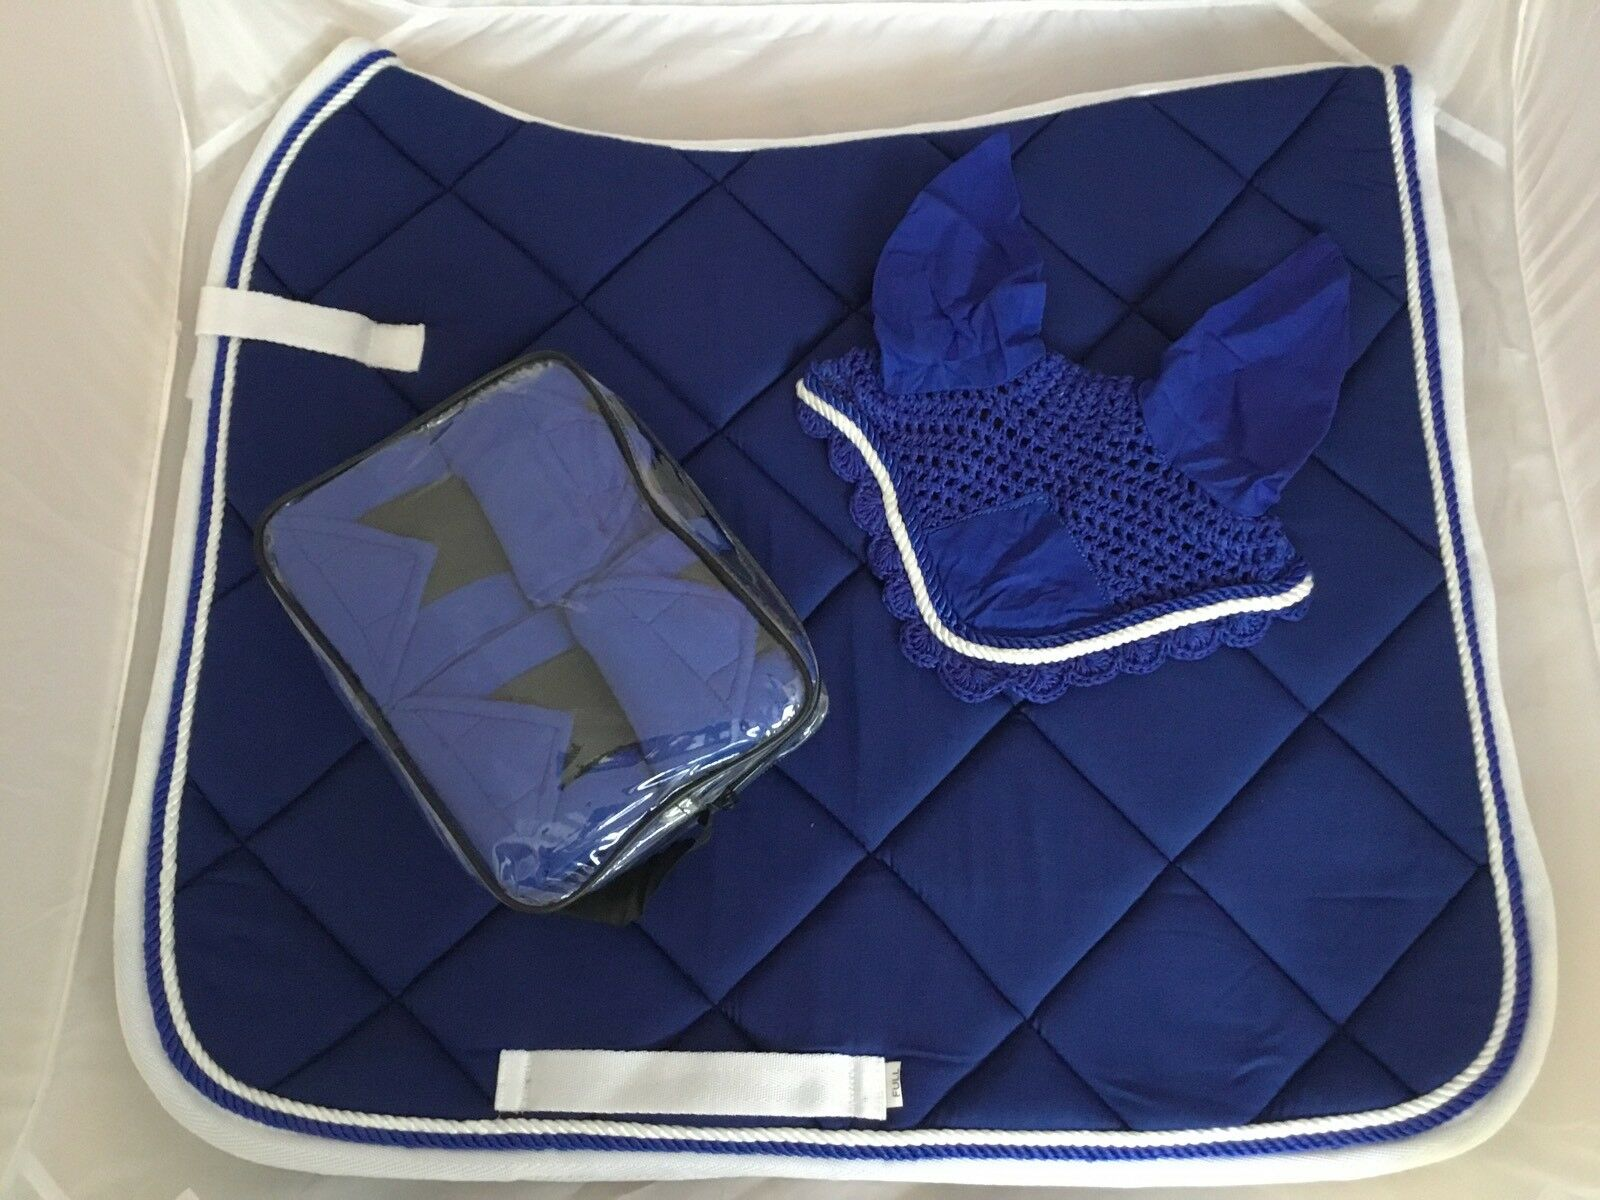 Pinnacle Royal Dressage Trio Set Royal Pinnacle Blau/Weiß Größe FULL 3c93de